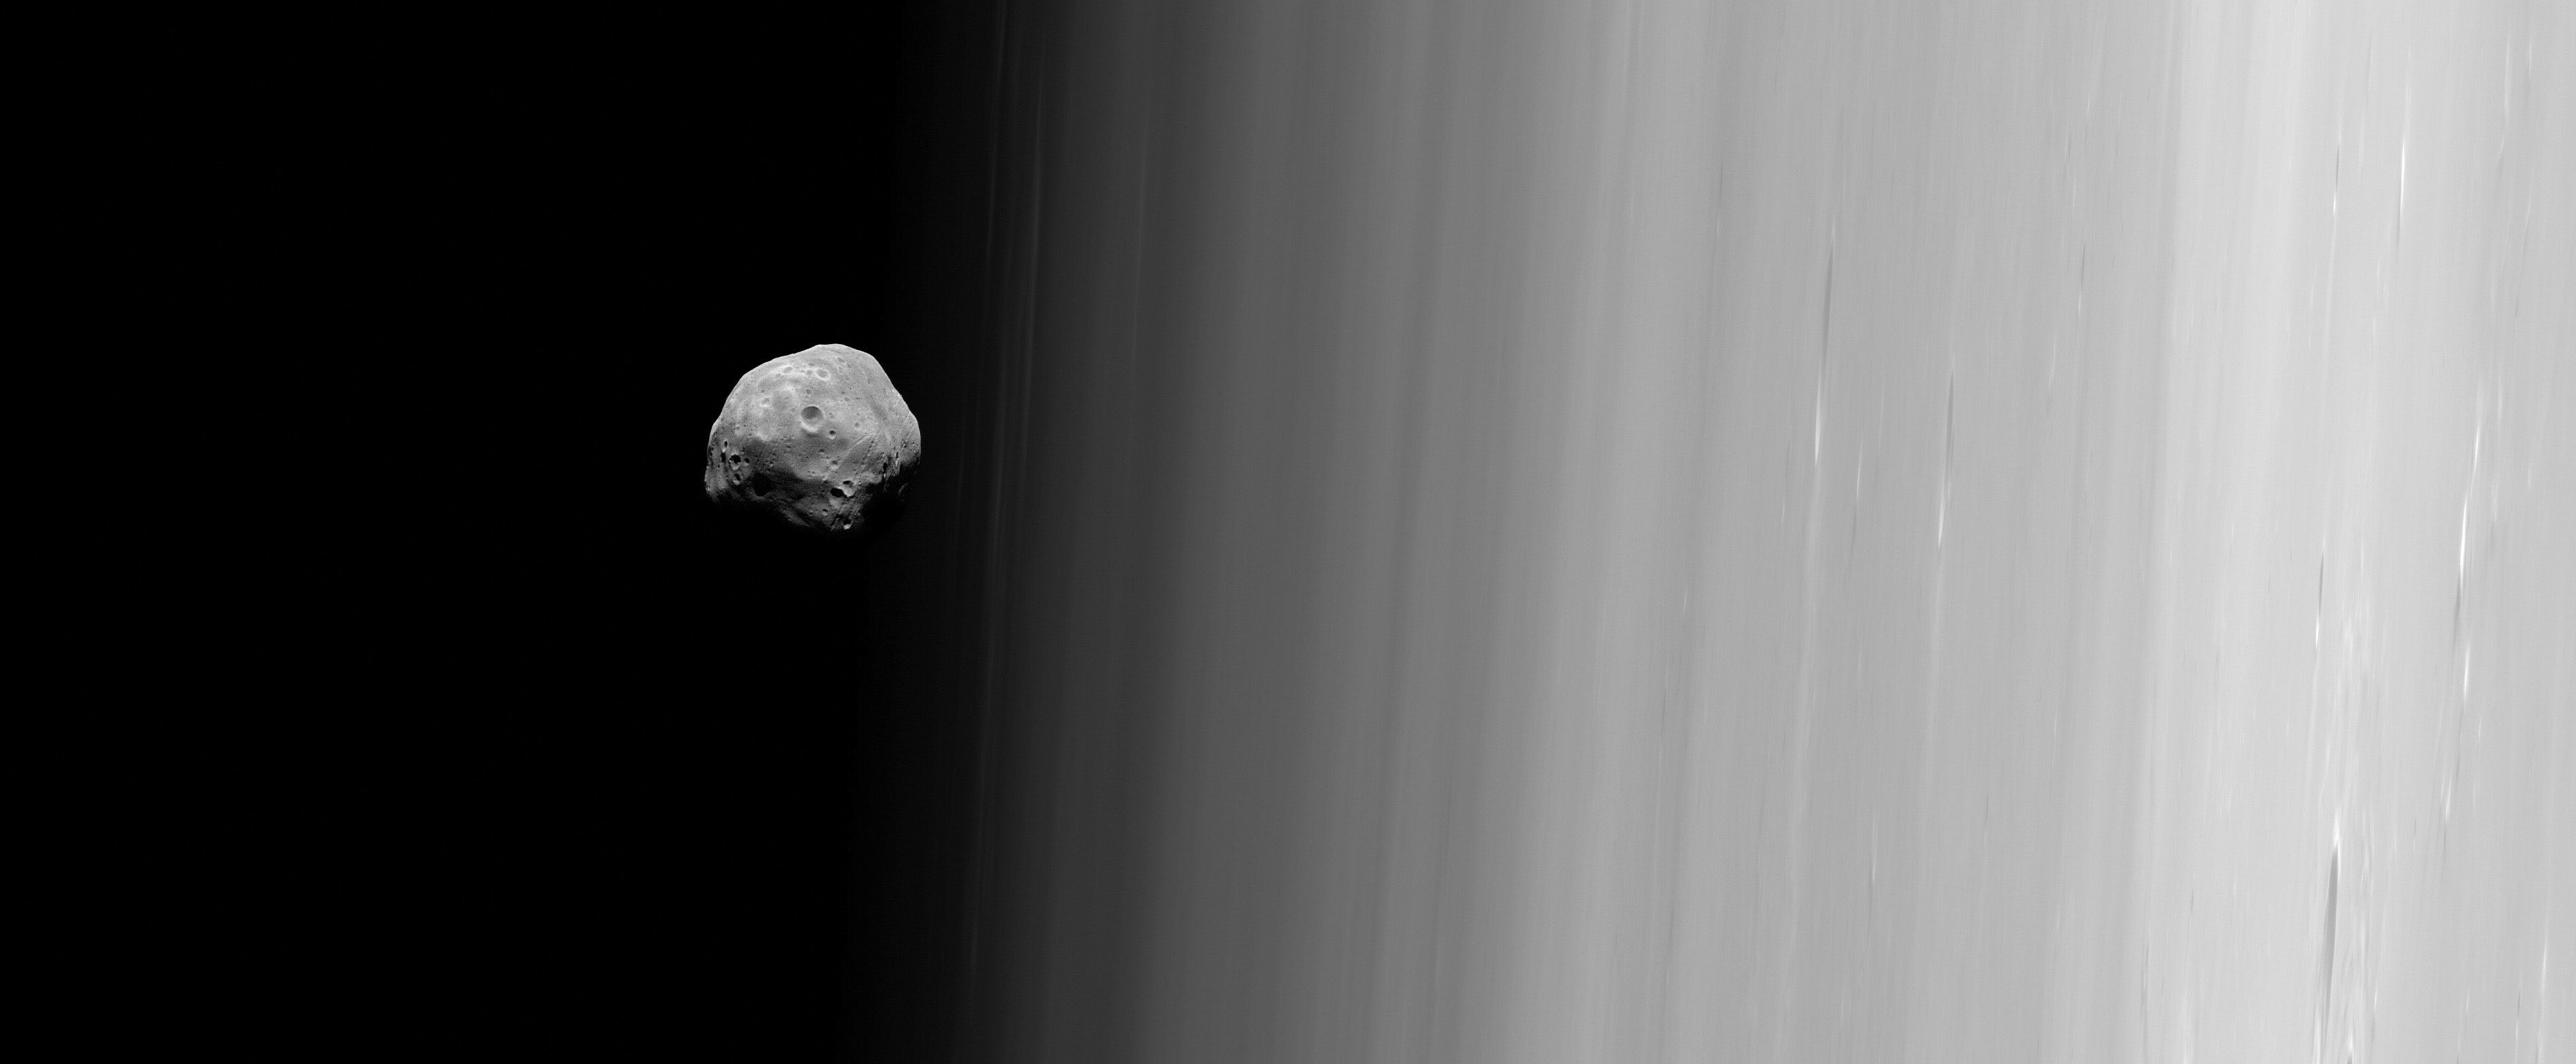 Phobos from Mars Express (ESA)